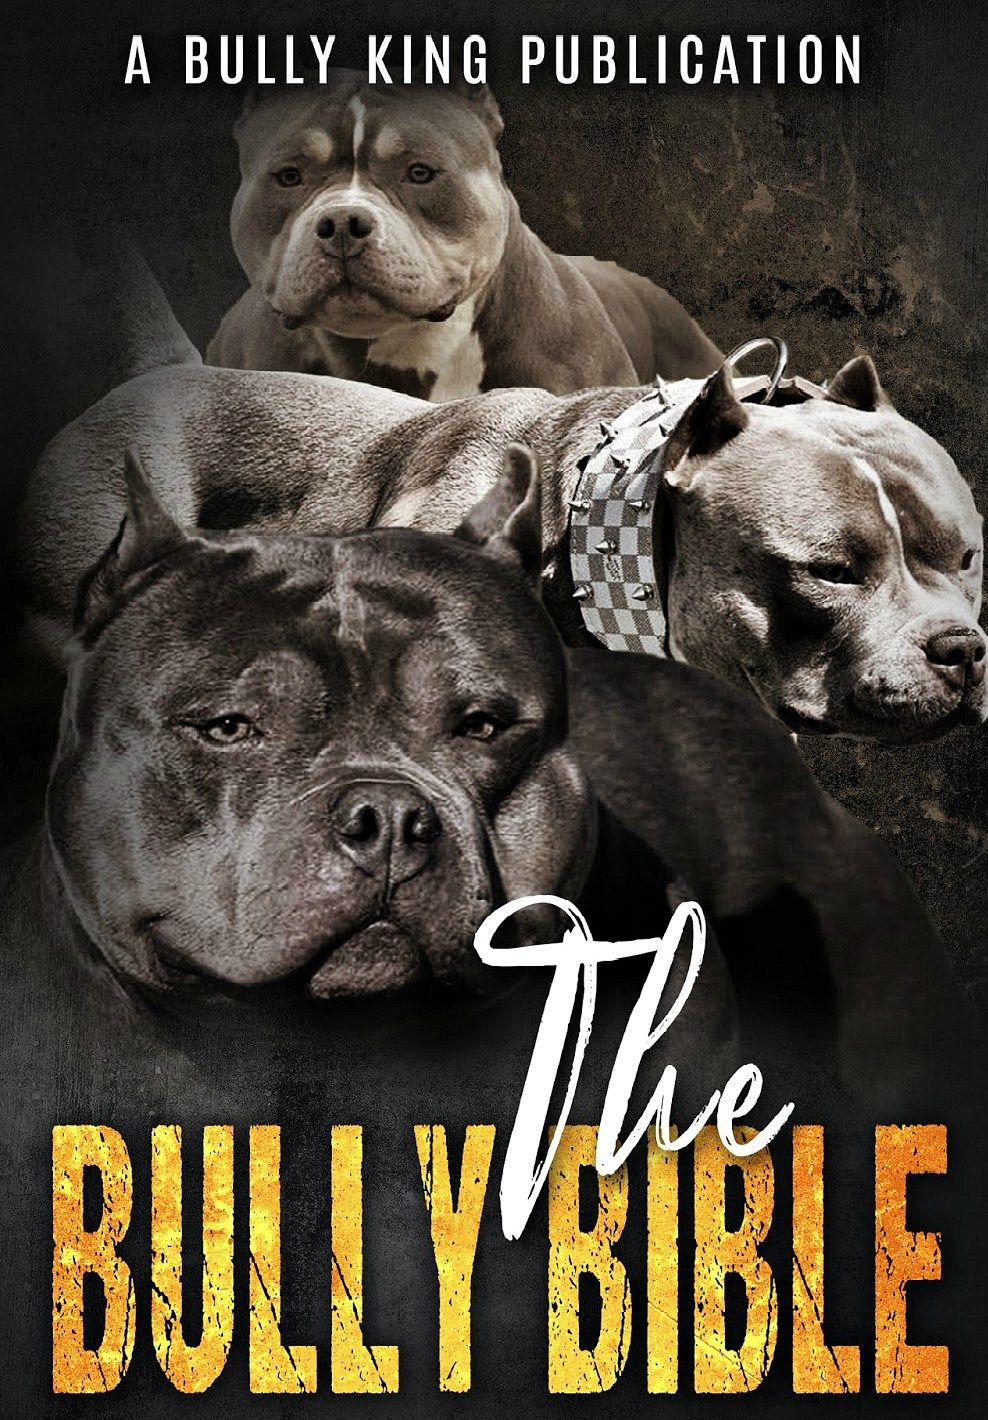 The Bully Bible American Bully Bully Breeds Bully Breeds Dogs